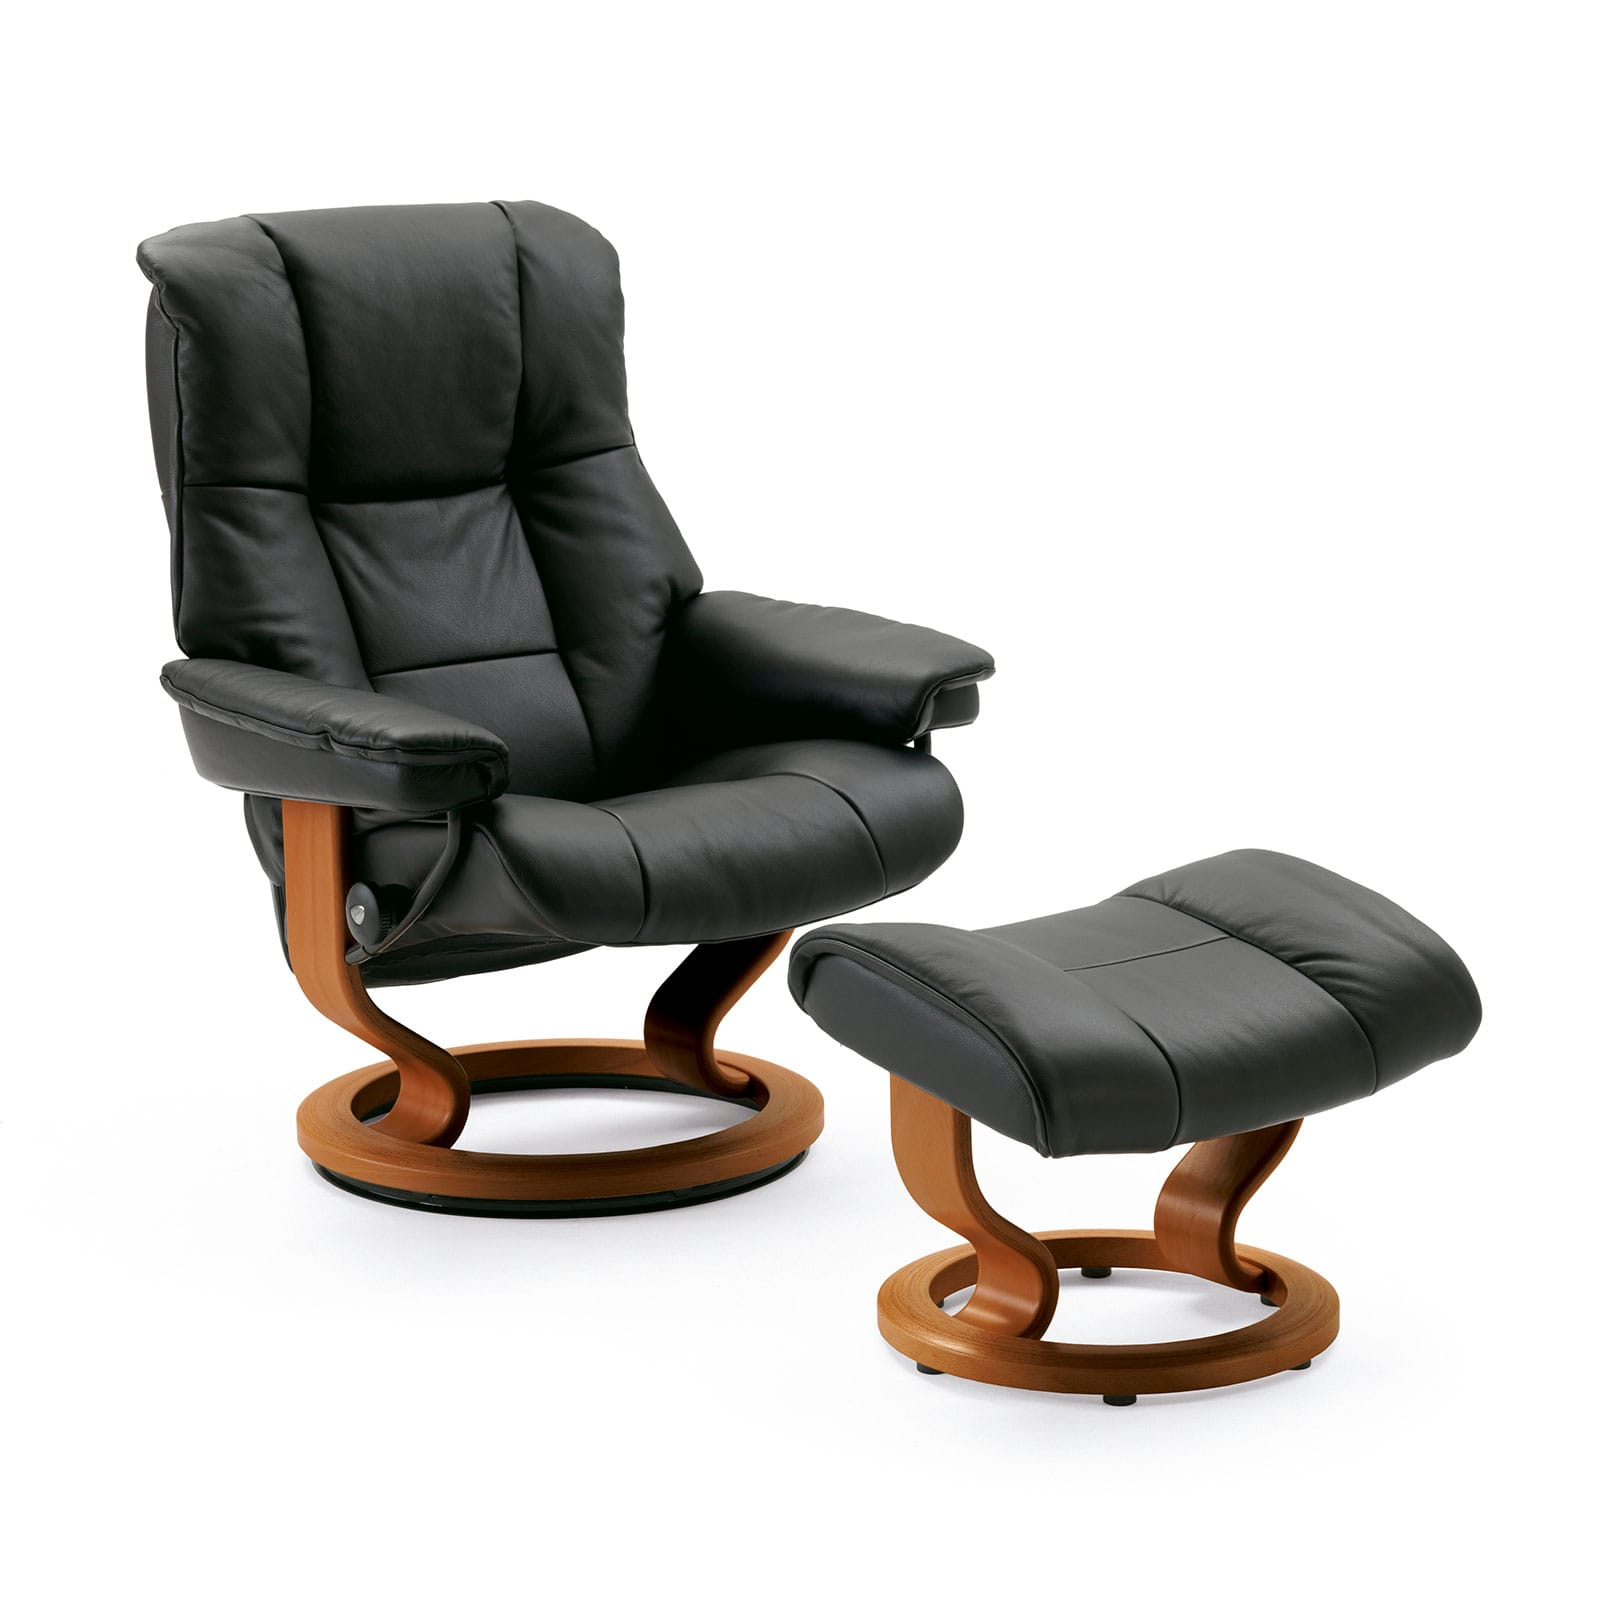 stressless sessel mayfair paloma black classic braun hocker. Black Bedroom Furniture Sets. Home Design Ideas